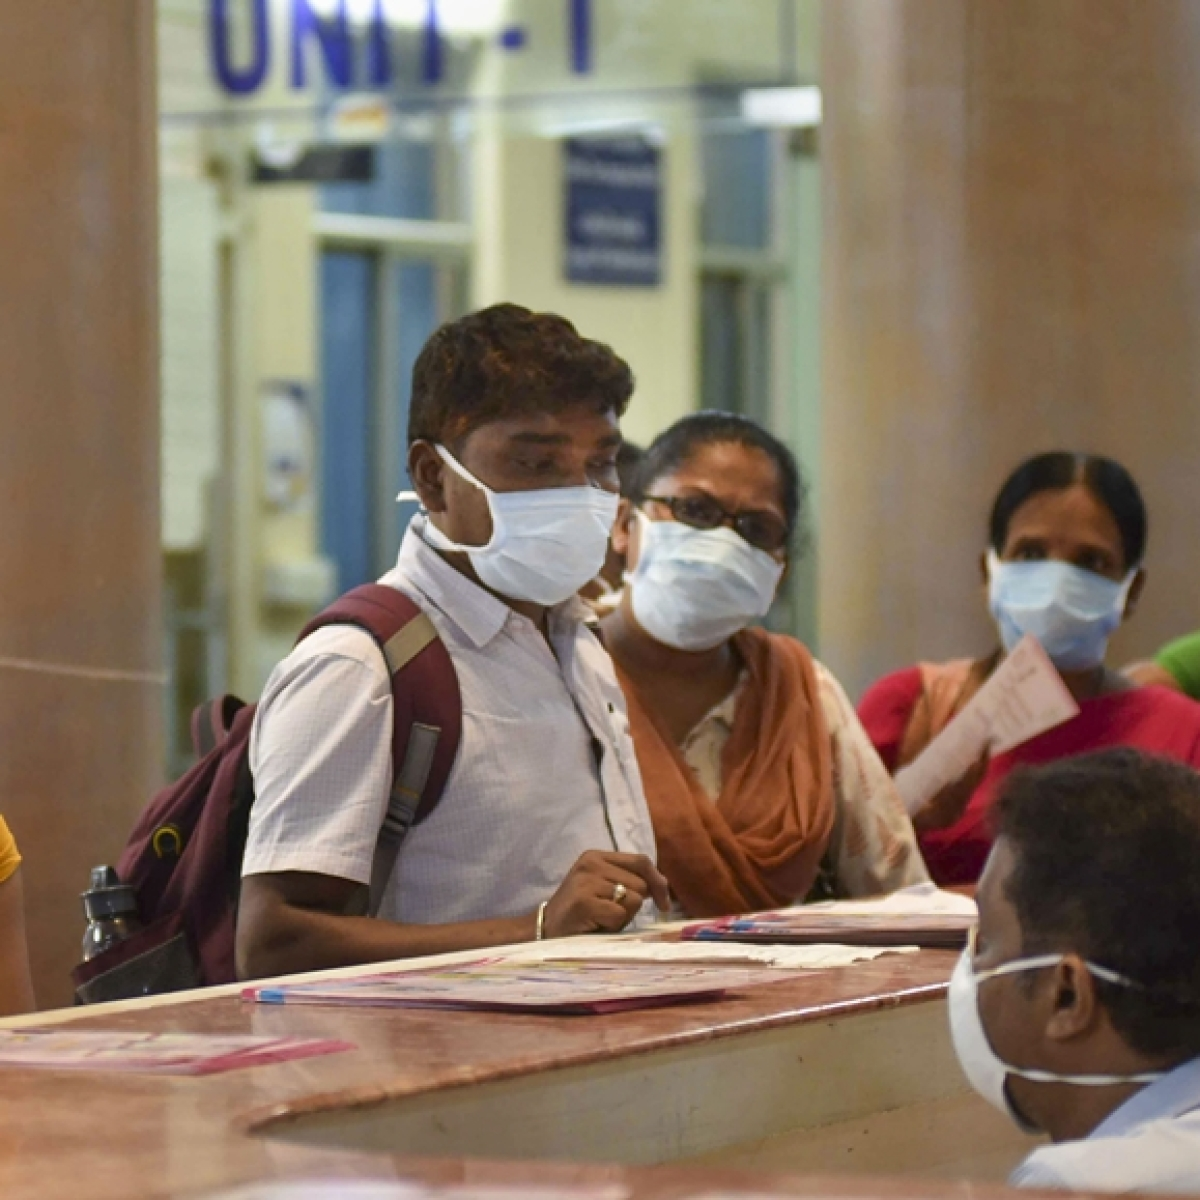 Latest News on Coronavirus in India: Demand for masks, sanitisers shoot up, shortage at stores